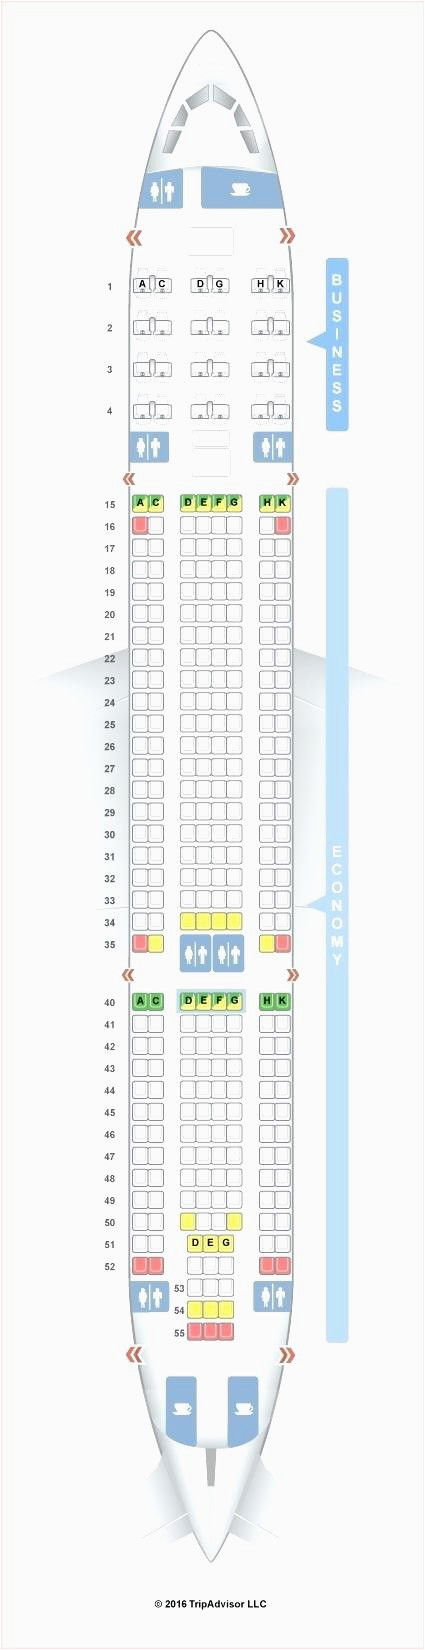 Air Canada E90 Seat Map Beautiful 38 Md88 Seat Map Images